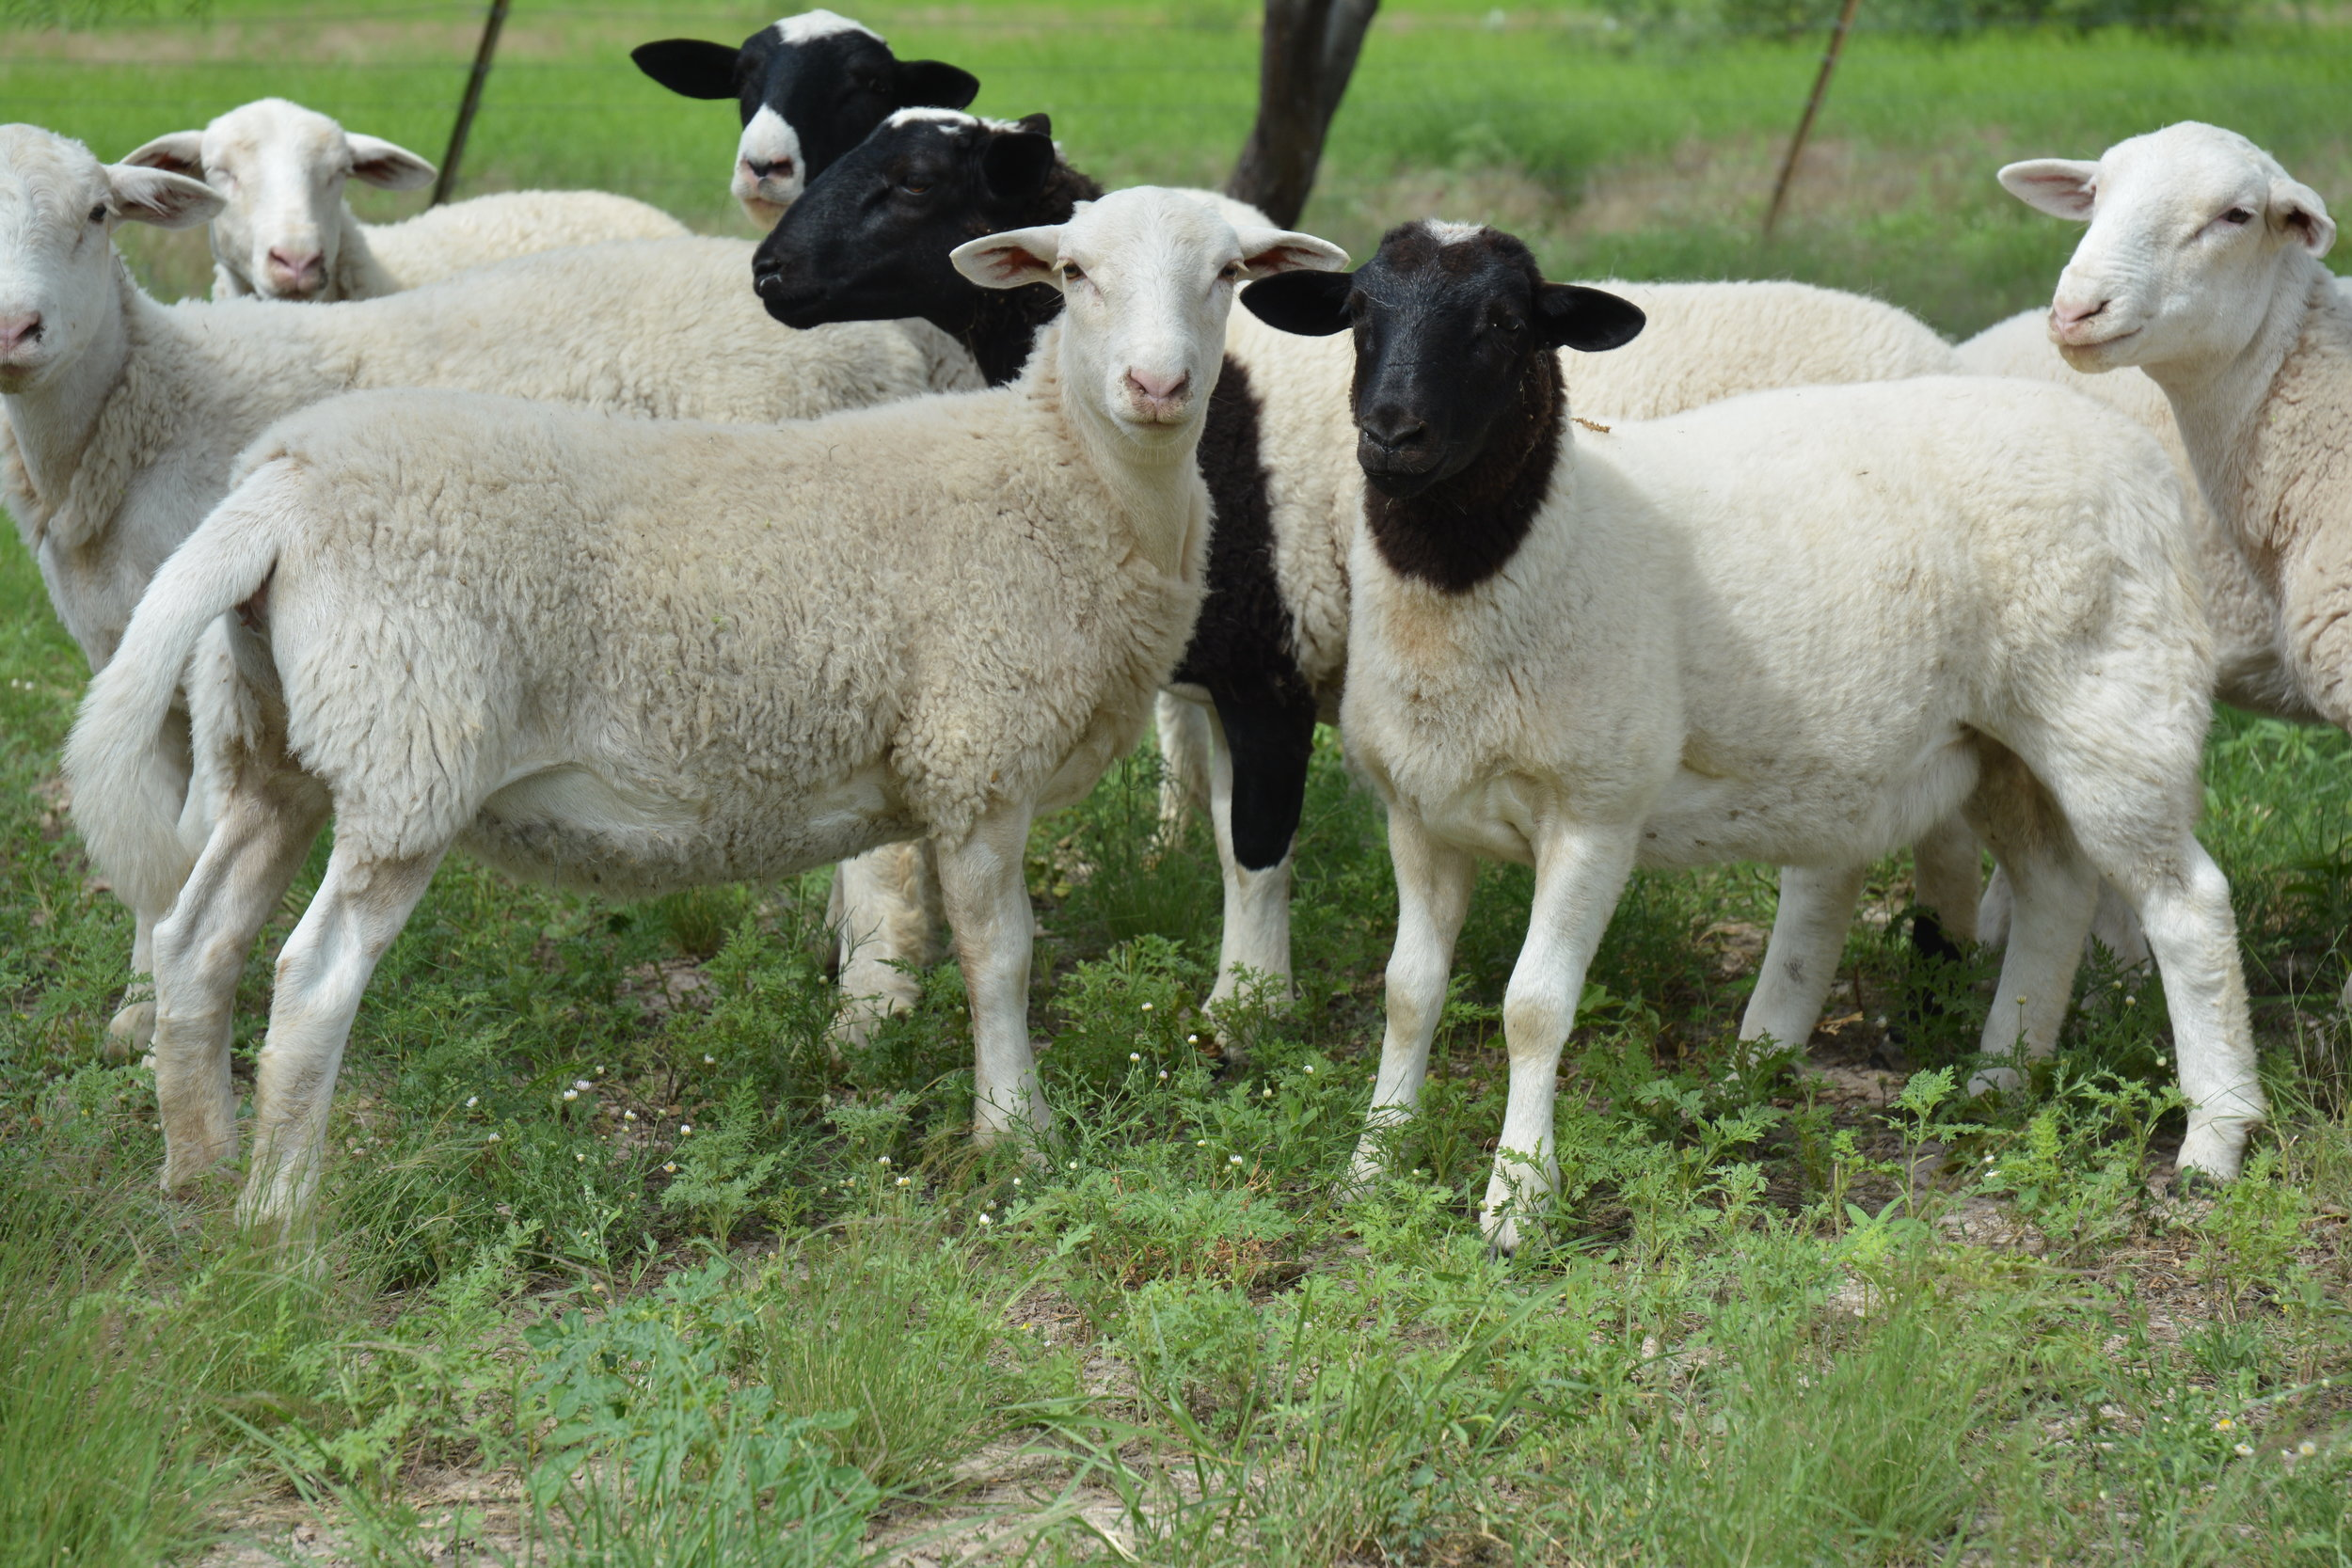 Sheep with white faces and black faces standing together in a pasture.